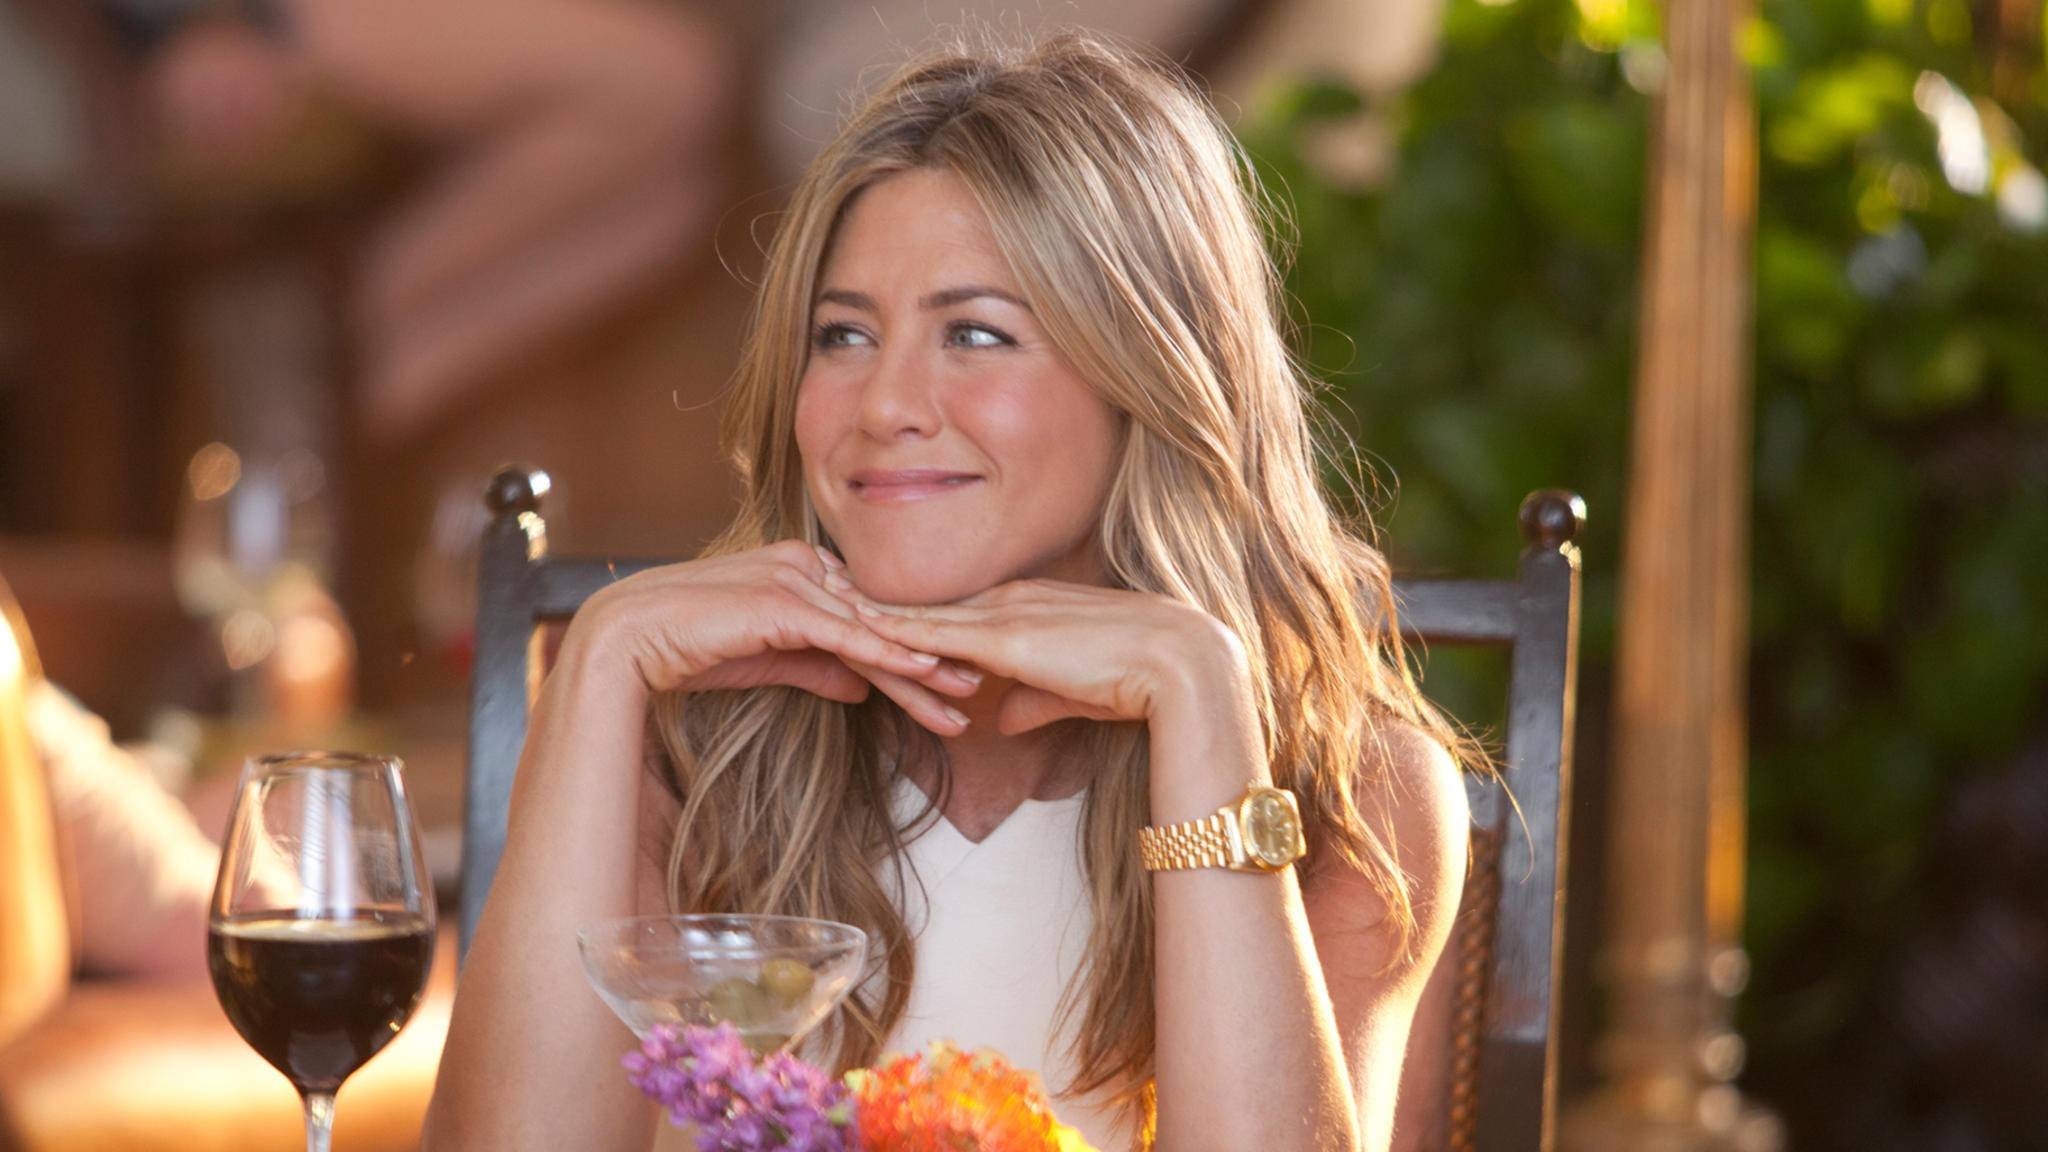 Hollywoodstar Jennifer Aniston wird Star einer Polit-Comedy.